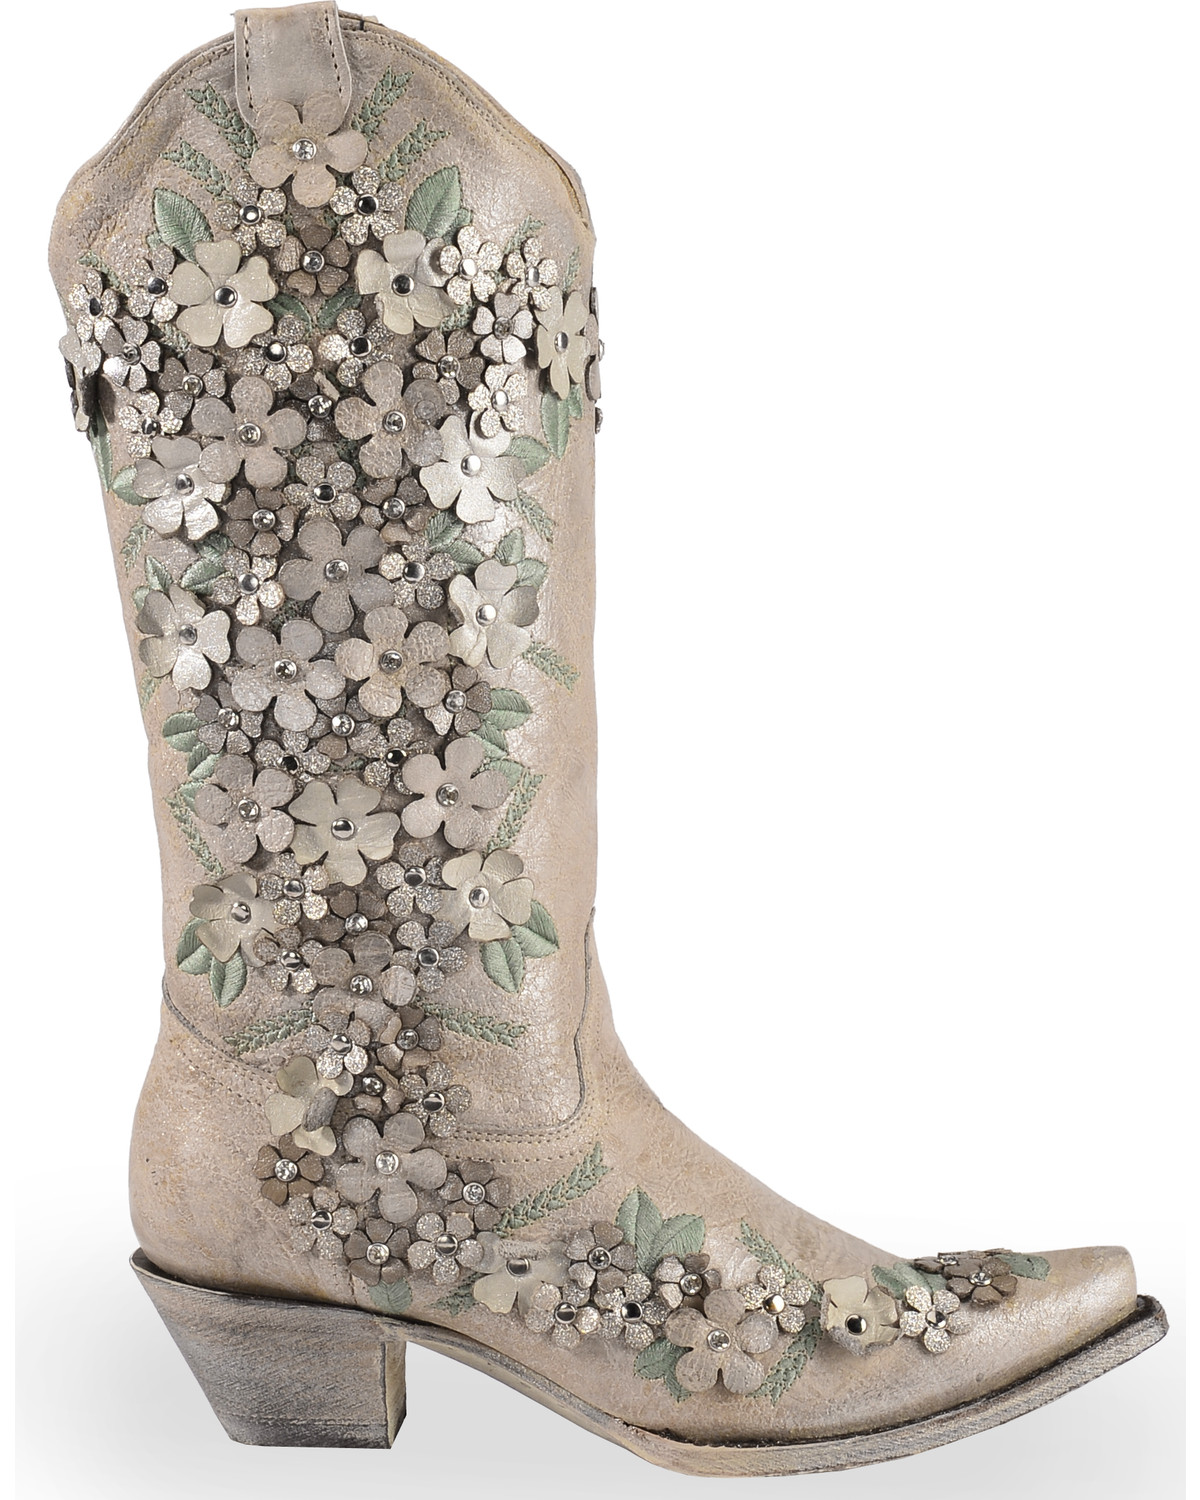 Overlay and Star Embroidery Studded Block Heel Boots sgUinSU